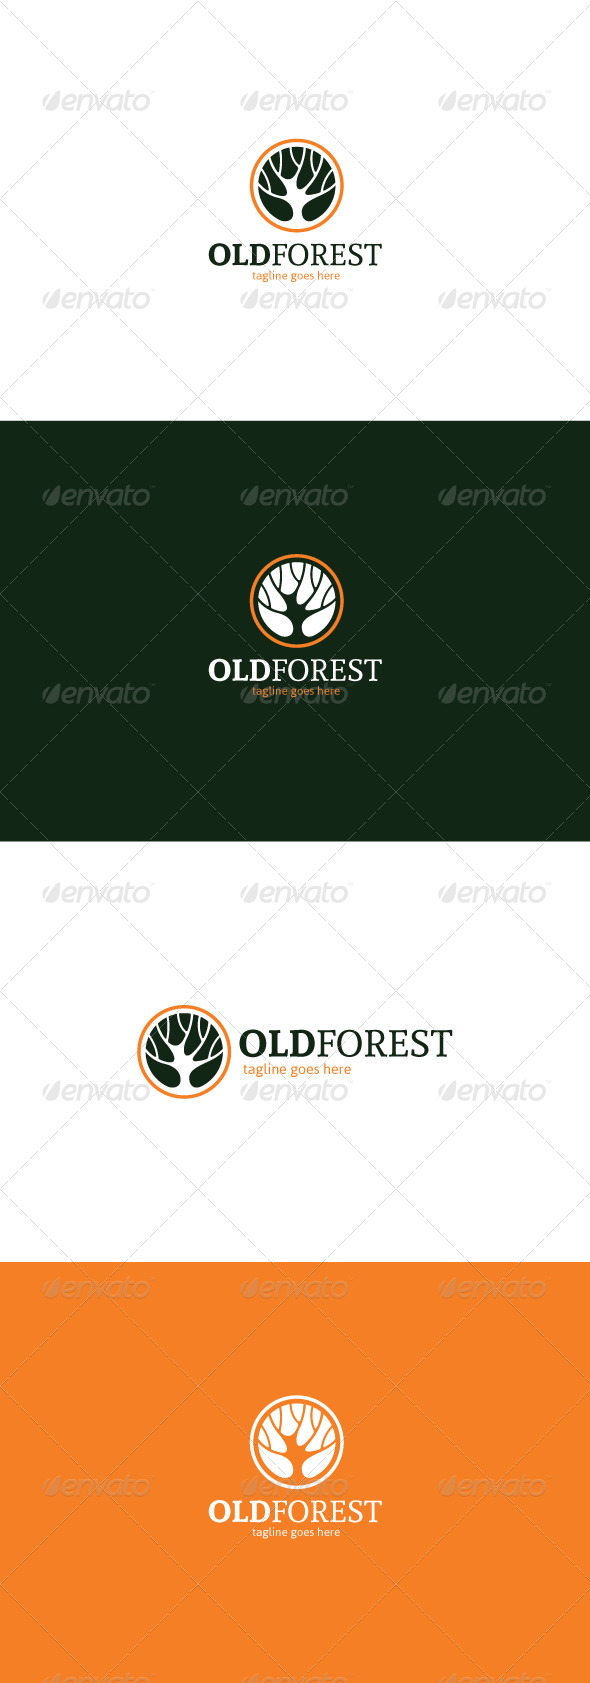 GraphicRiver Old Forest Logo 8174715